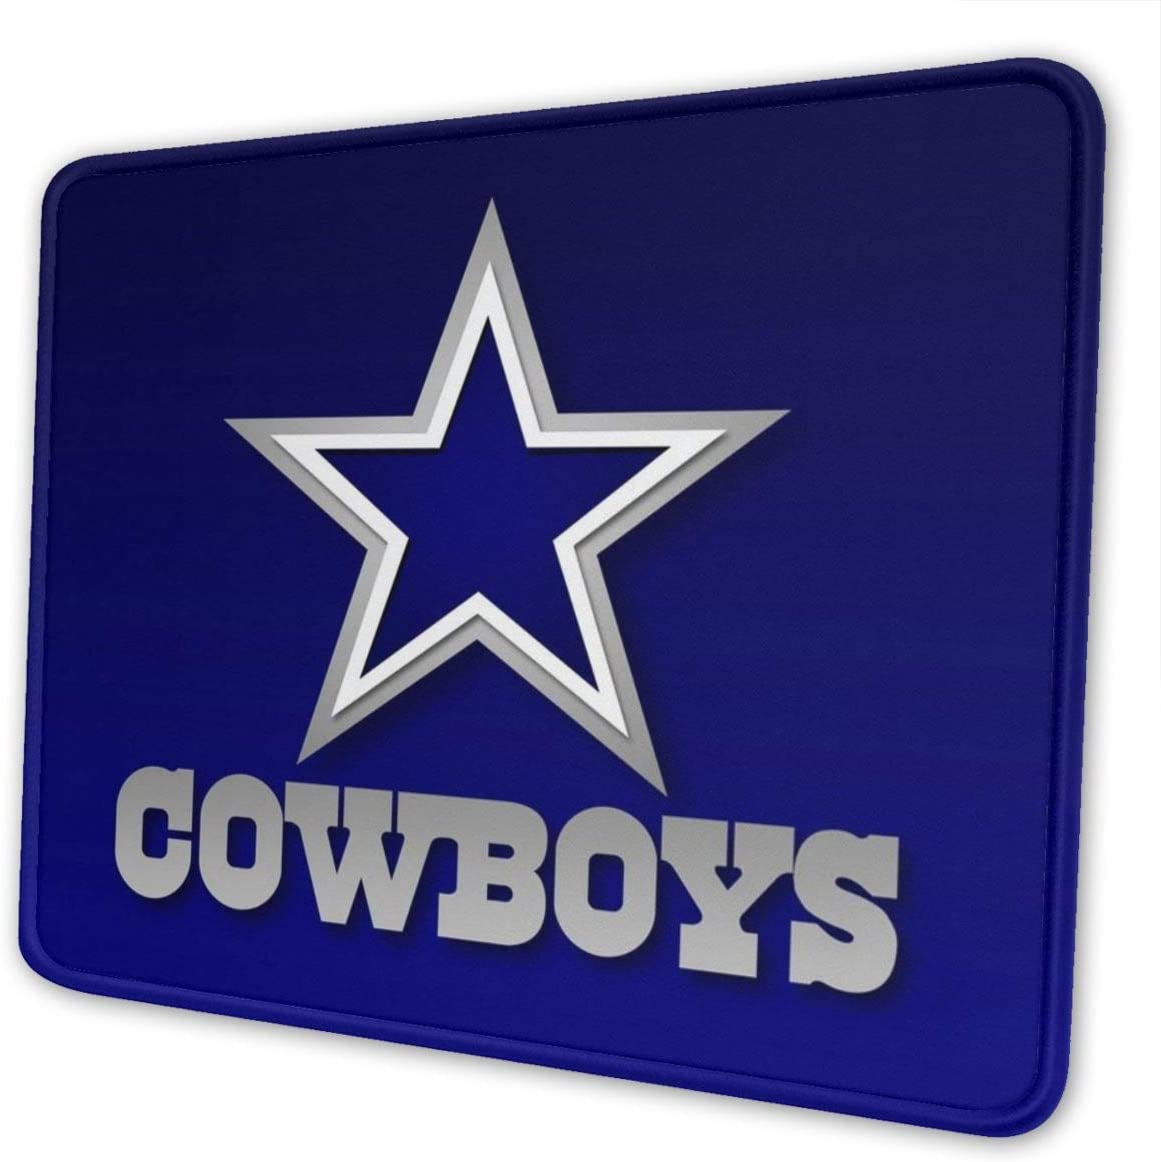 Dallas Cowboy Mouse Pad with Stitched Edge, Blue Customized Design Mousepad Non-Slip Rubber Large Gaming Mouse Pad for Laptop, Computer & Office, 11.8 X 9.8 X 0.12Inch